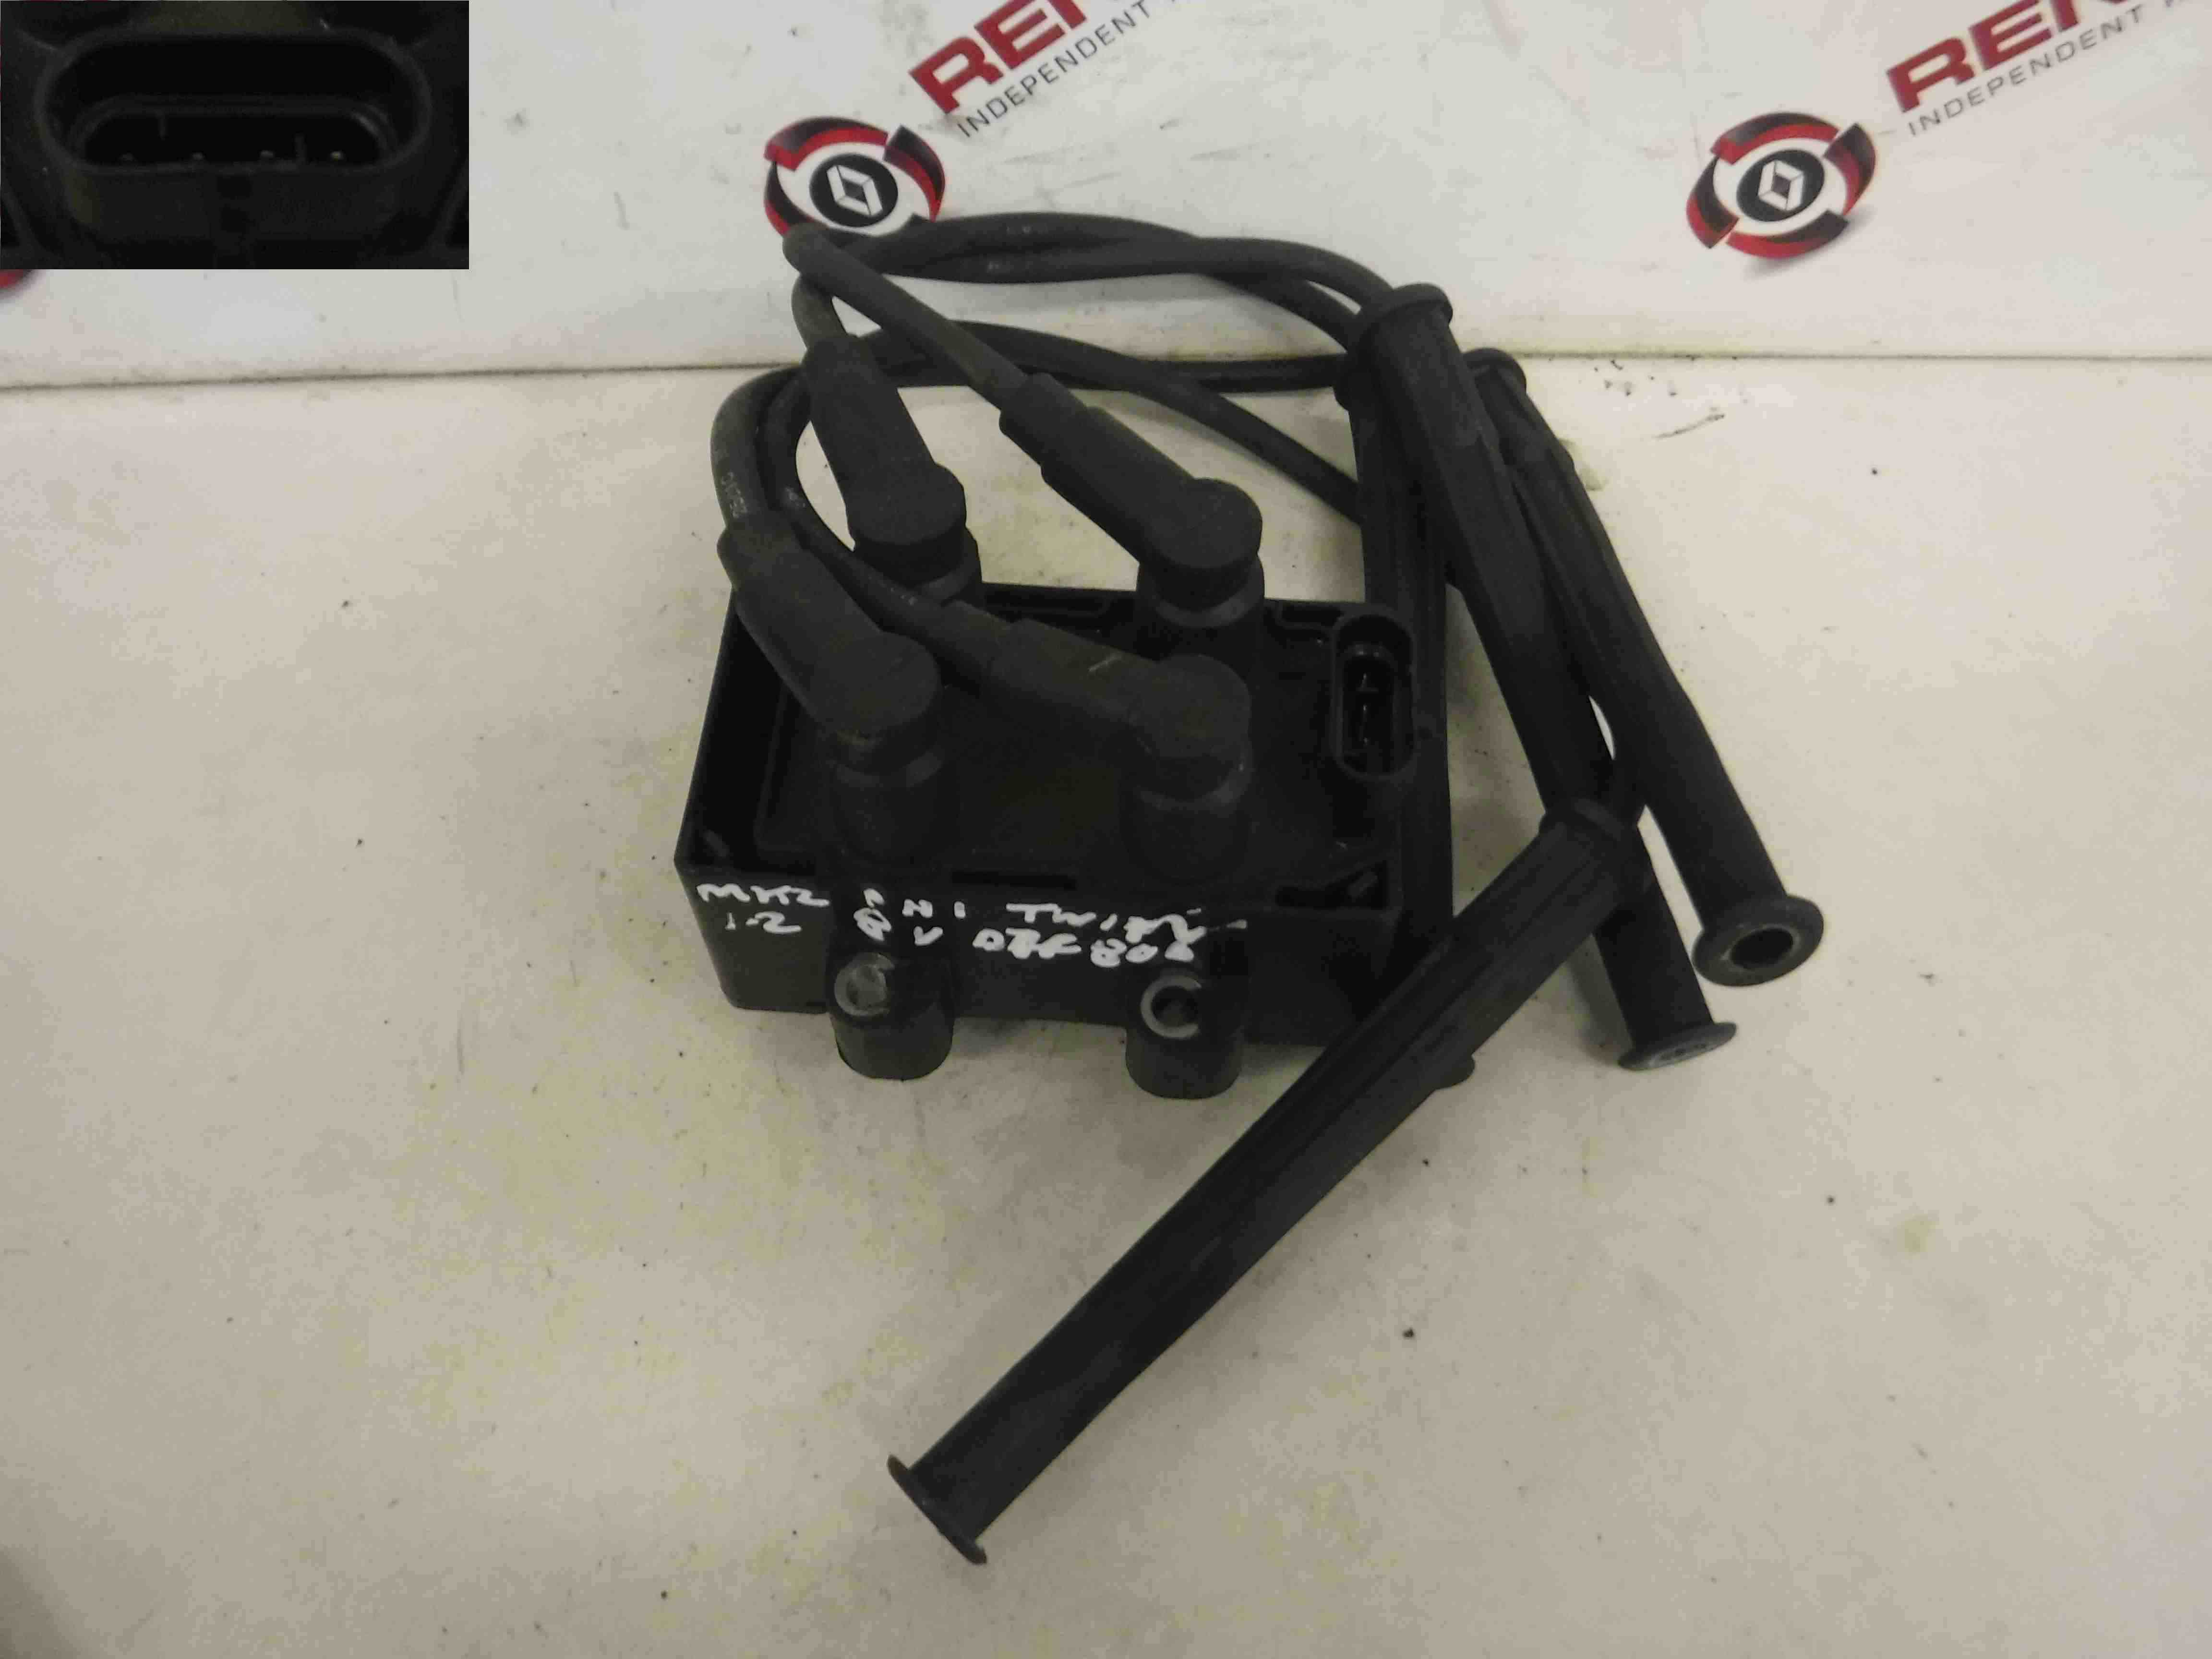 Renault Twingo 2007-2011 1.2 8v Ignition Coil Pack + Leads 7700274008 7700873701